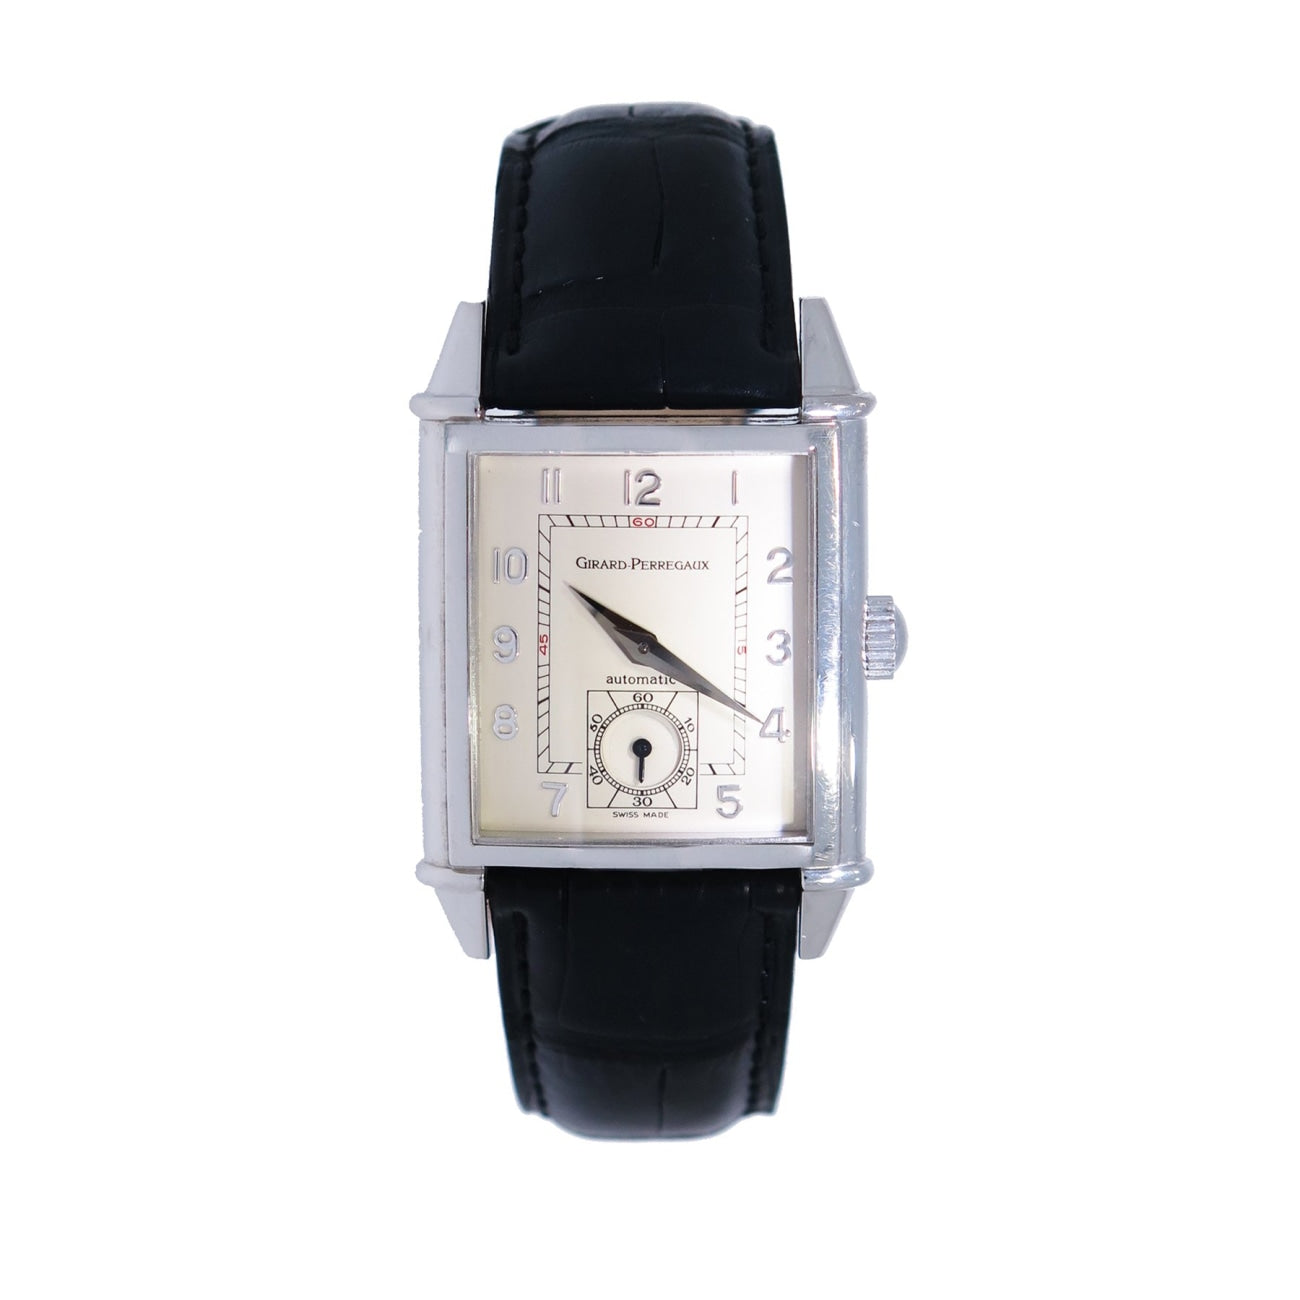 Pre-Owned Girard-Perregaux Watches - Vintage 1945 | Manfredi Jewels